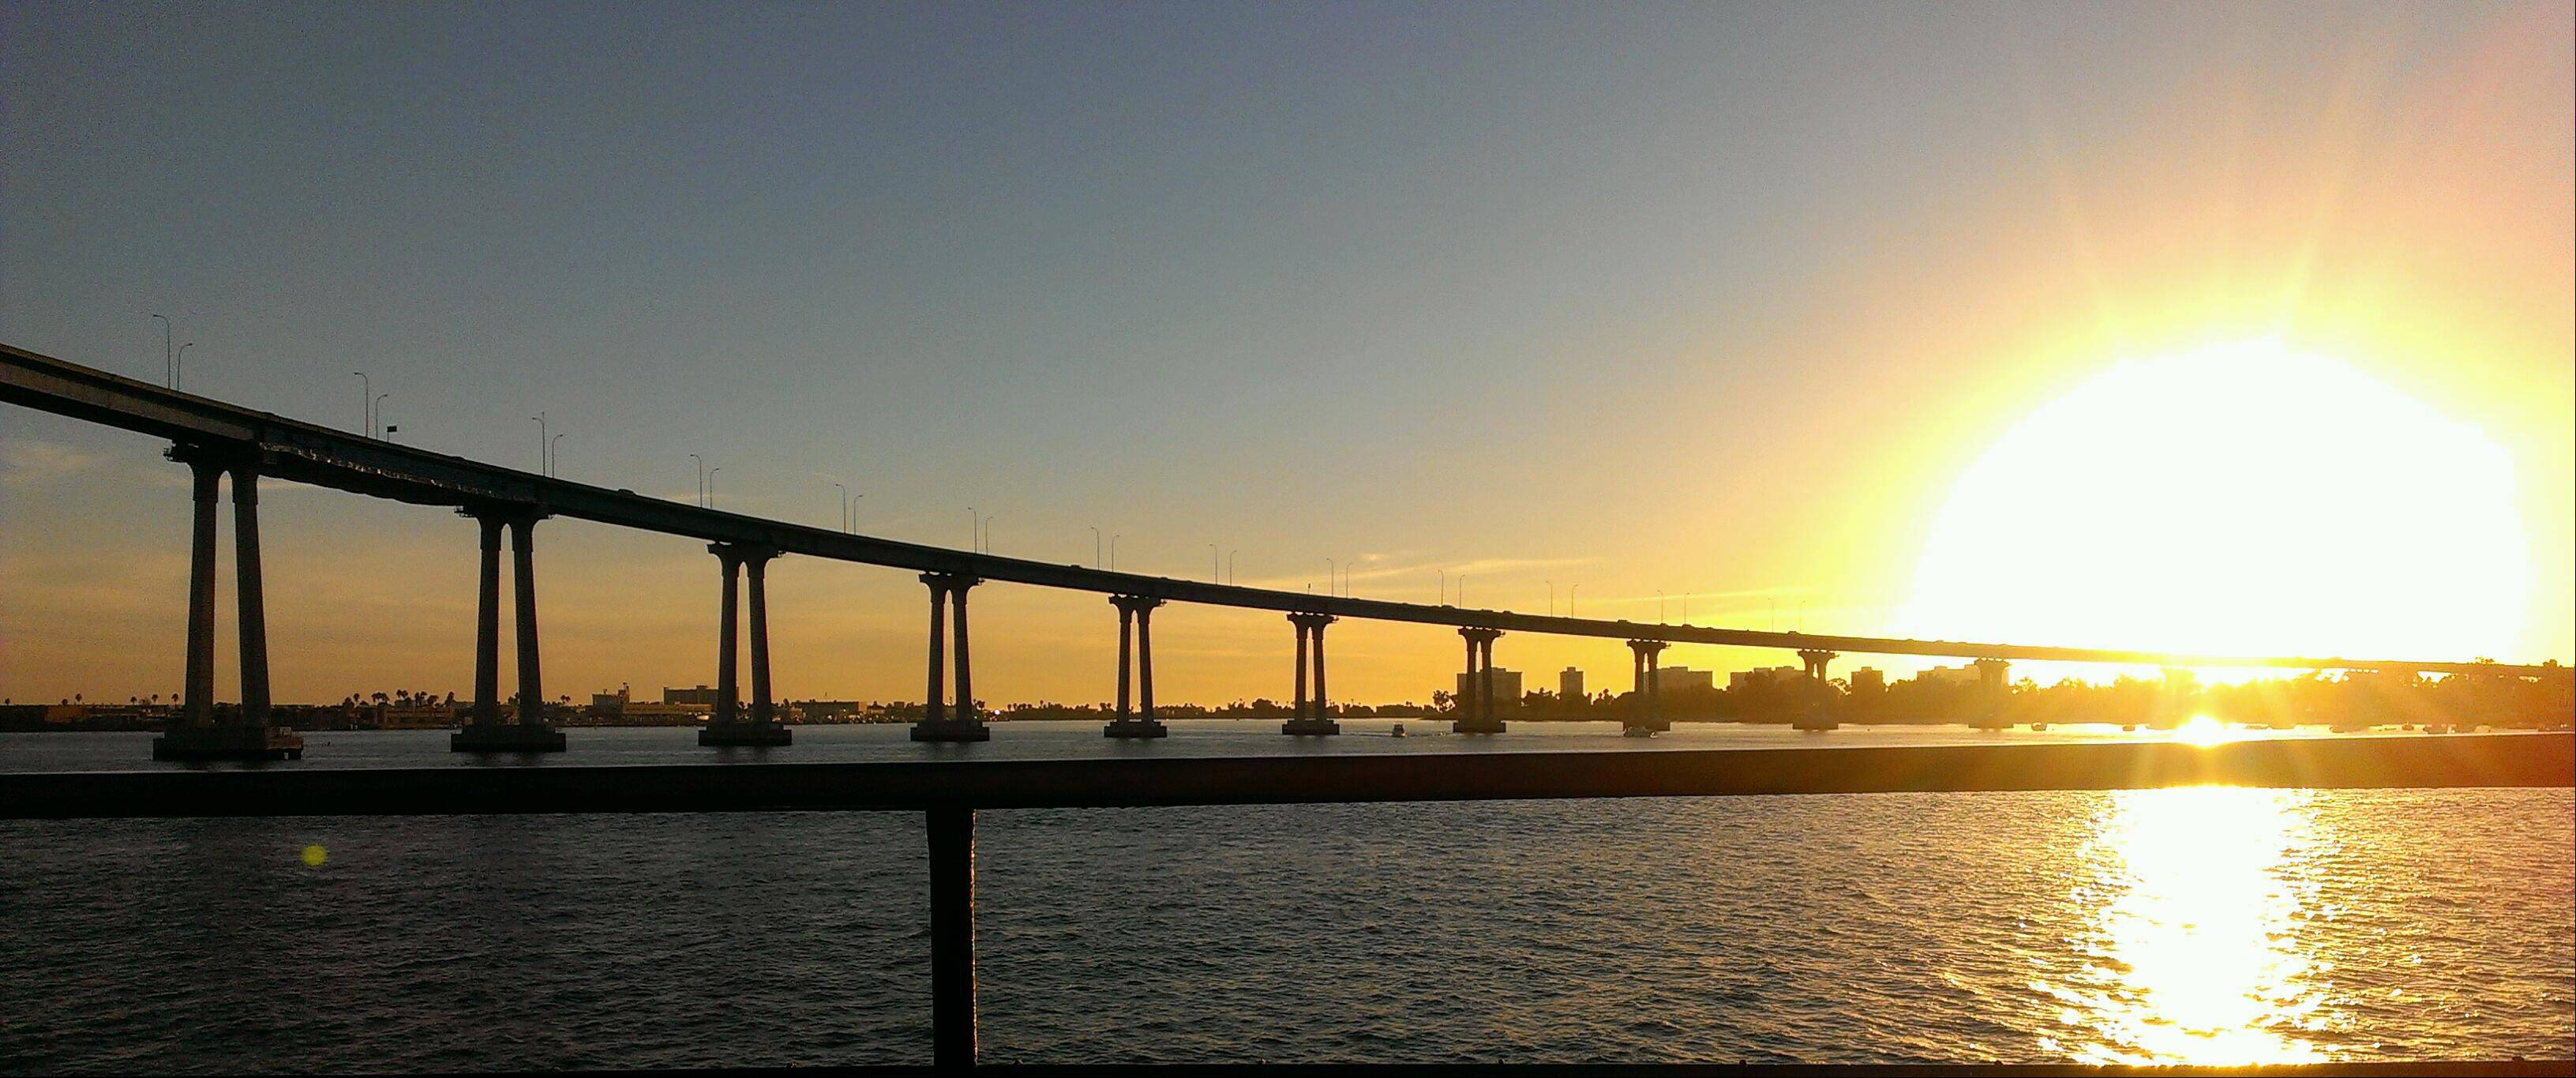 This photo is of the Coronado bridge in San Diego, CA. It was taken while on a cruise of the bay.